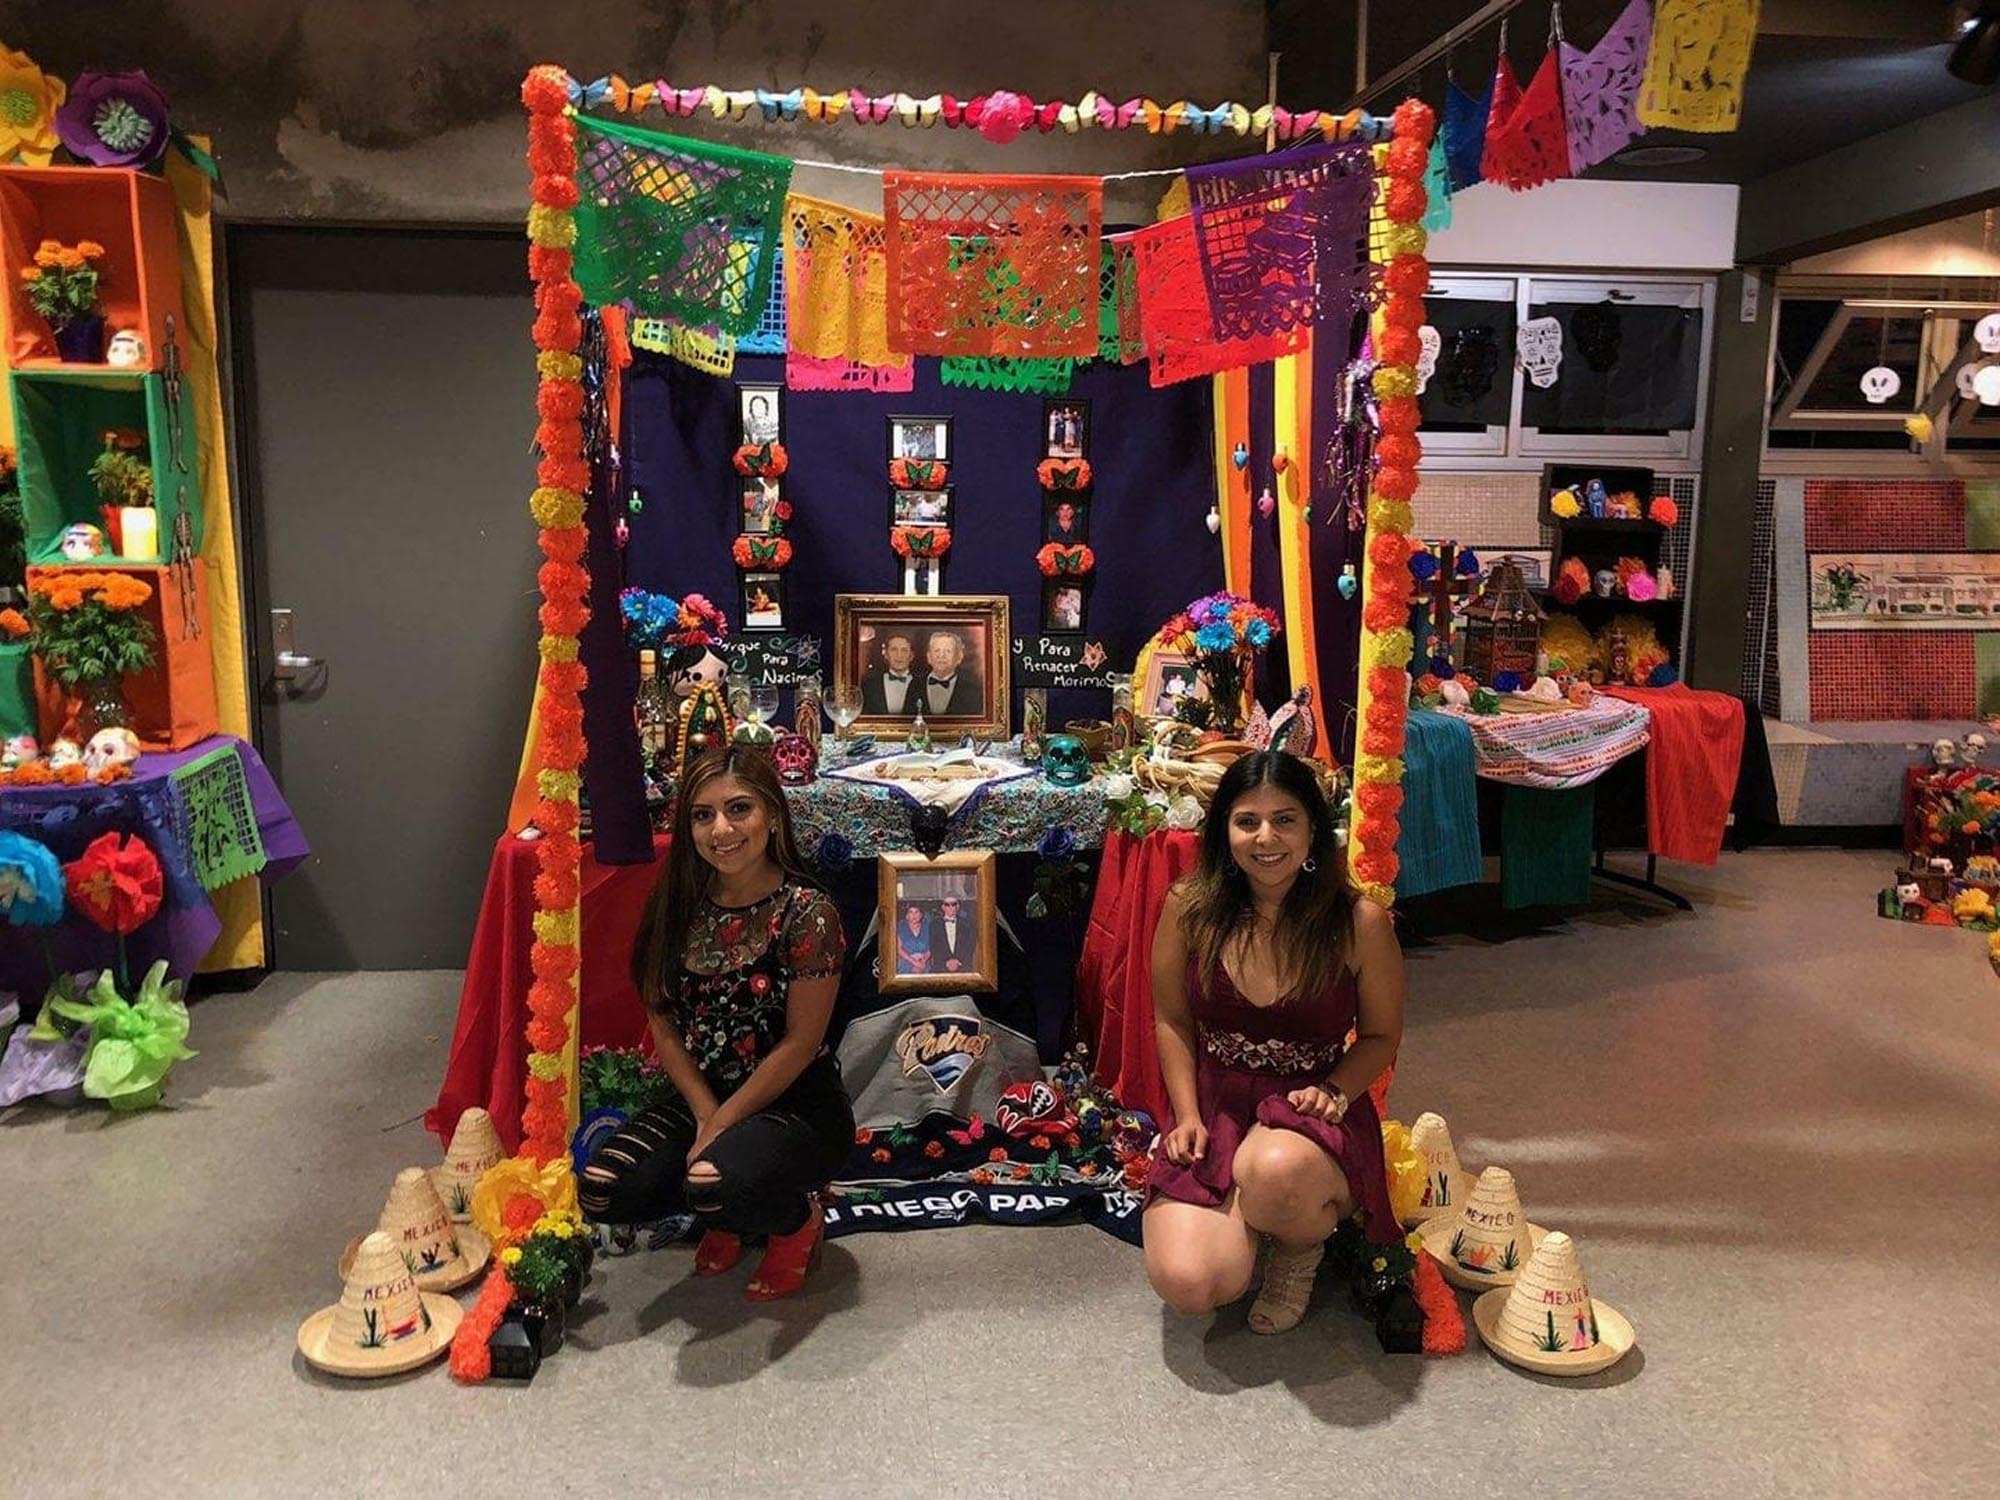 two woman crouching in front of a dia de los muertos altar, smiling at the camera. the altar is heavily decorated in colorful items and is indoors